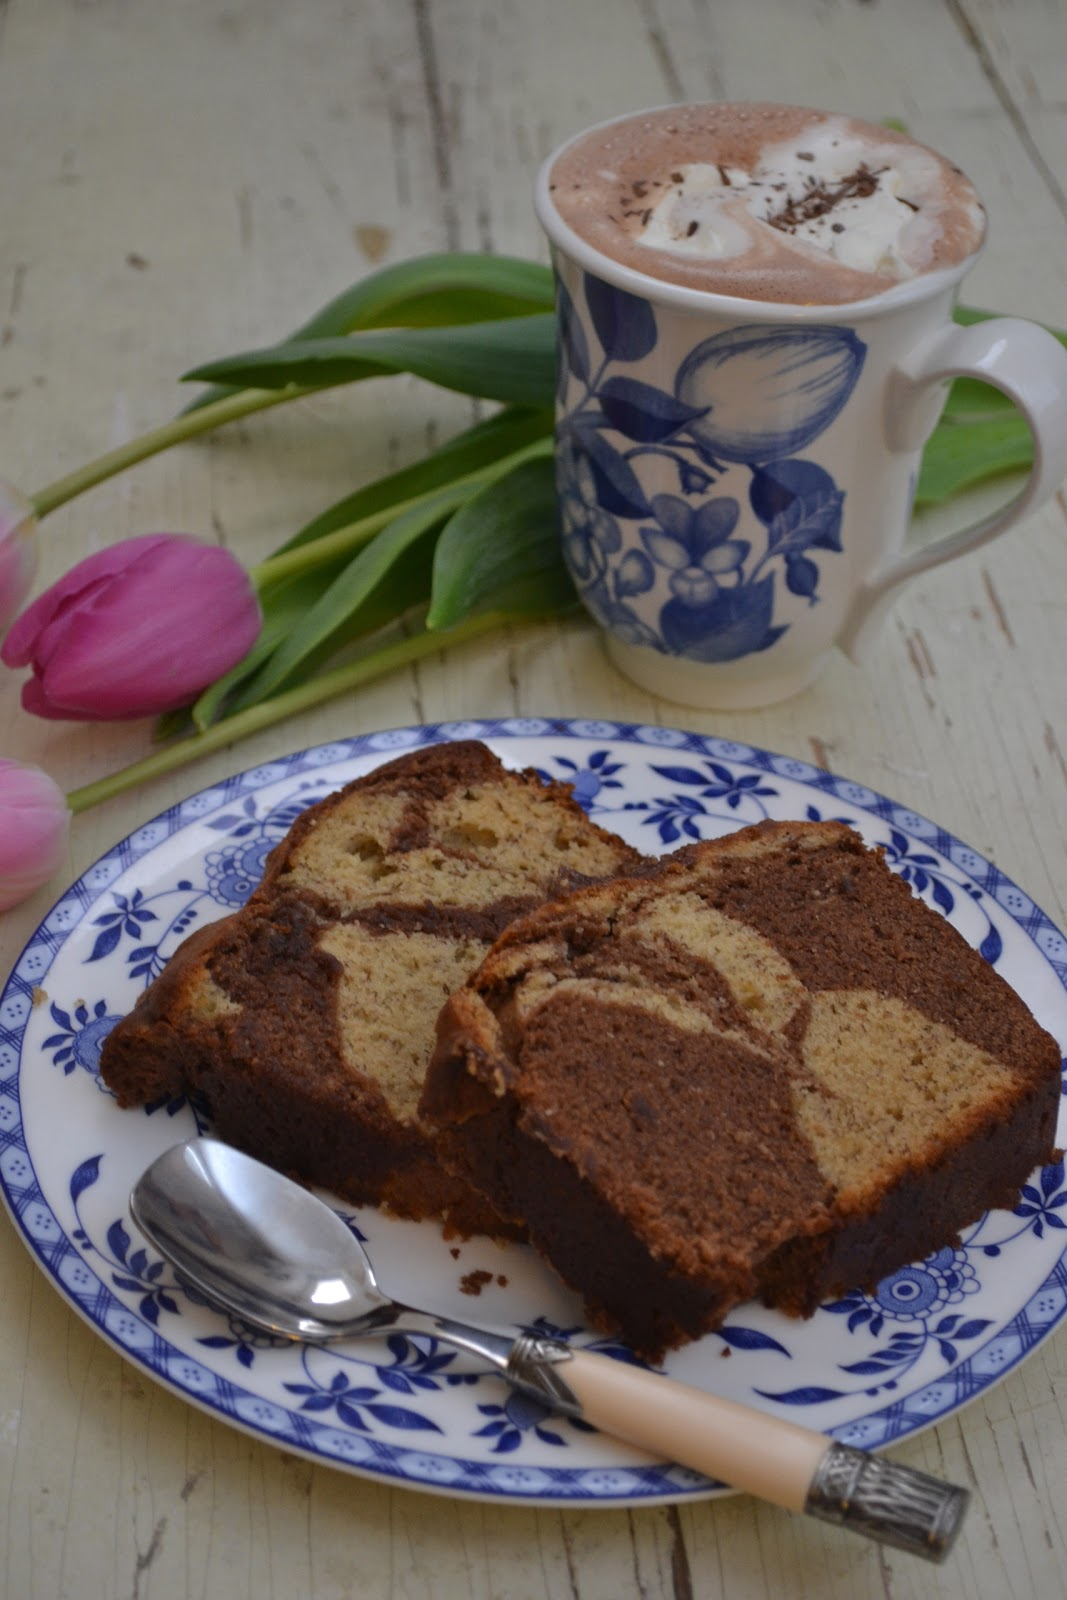 ... Nutella Day with Nutella Swirl Banana Bread and Nutella Hot Chocolate